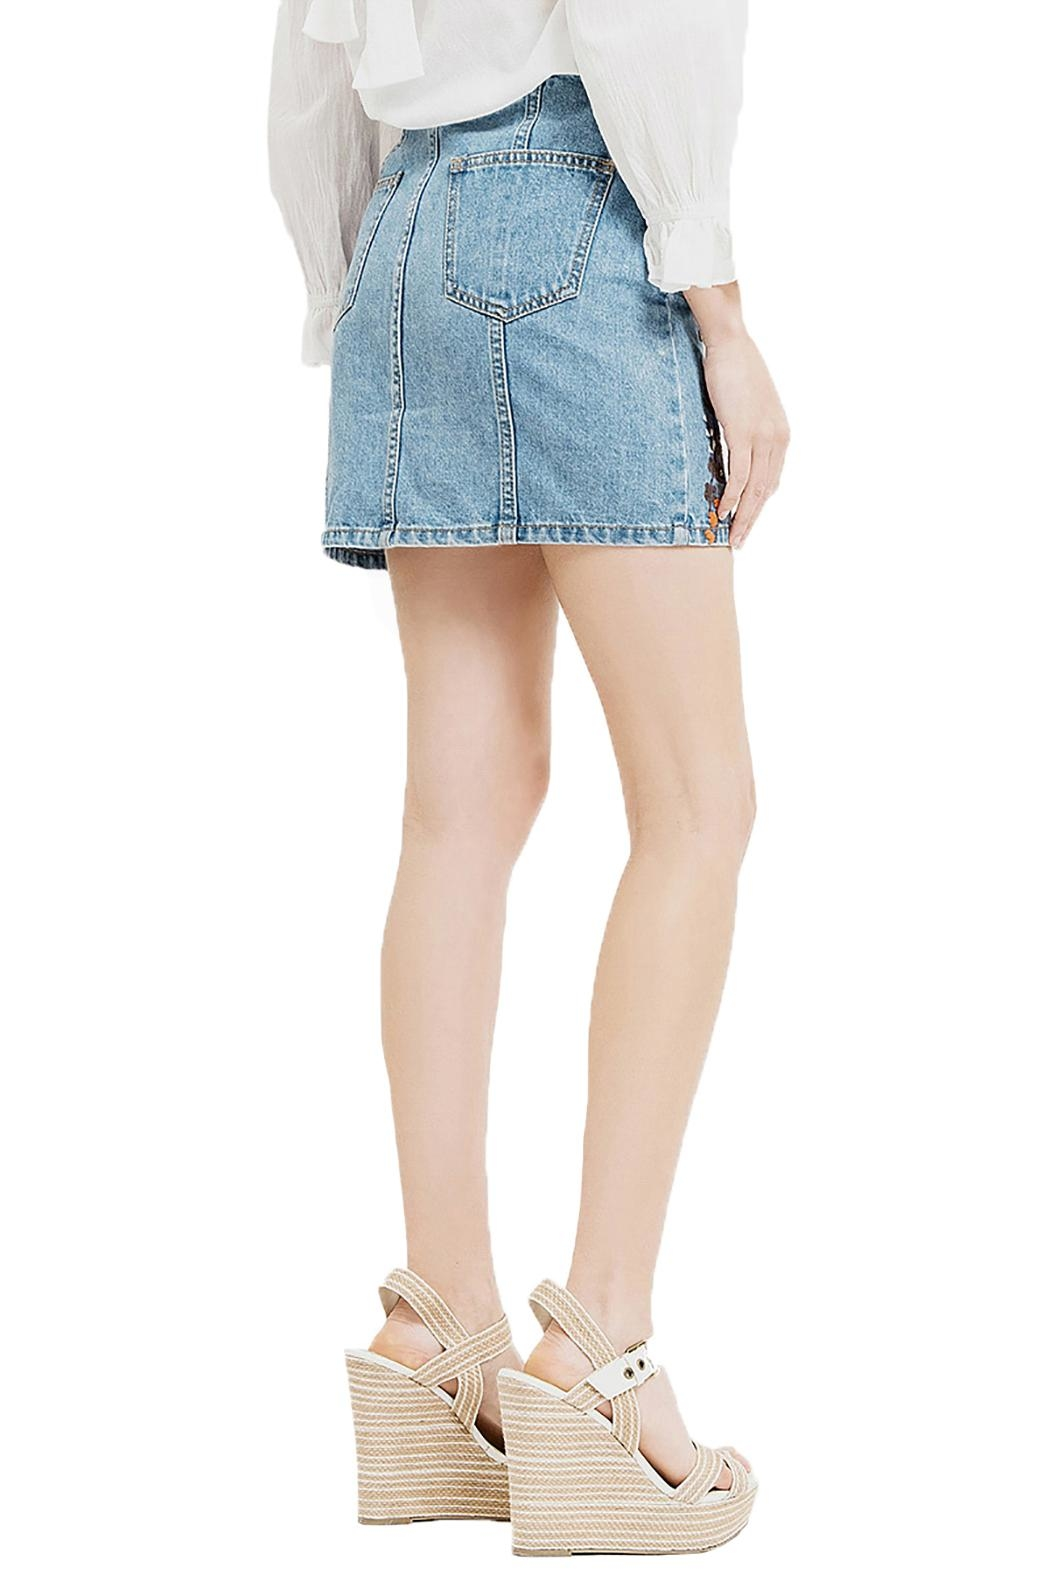 Blu Pepper Emboridery Denim Skirt - Side Cropped Image